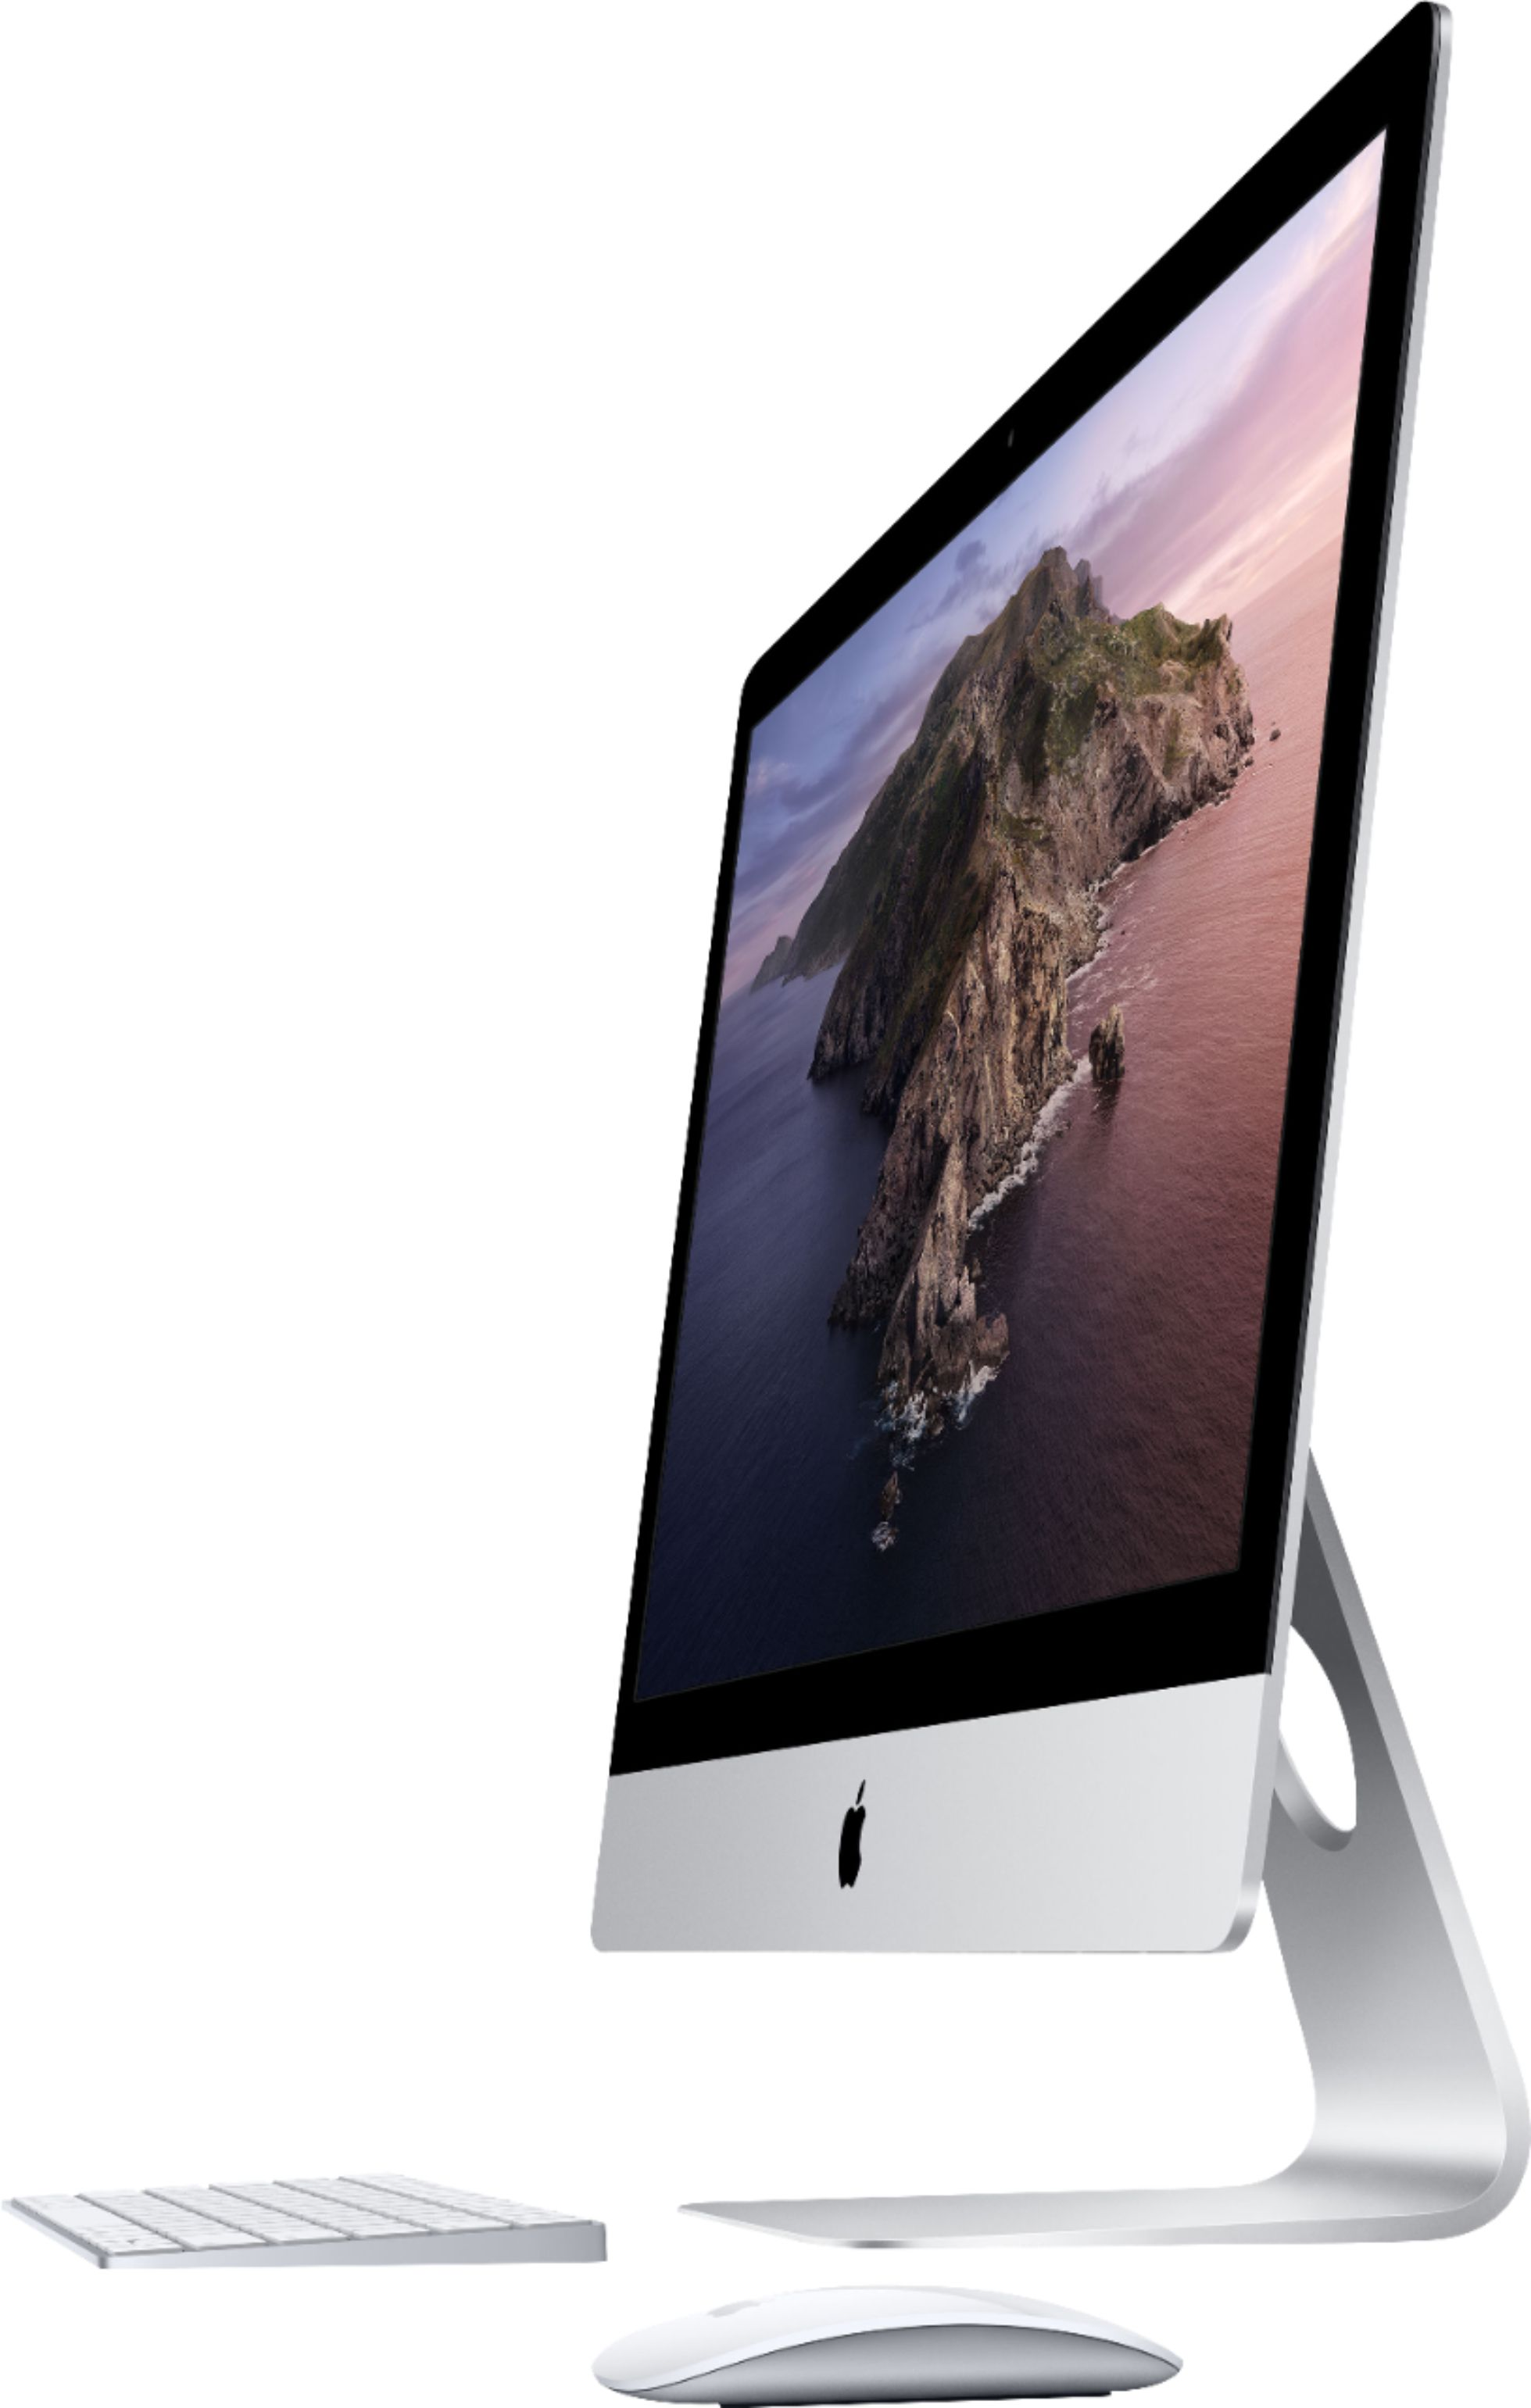 "Left Zoom. Apple - 27"" iMac® with Retina 5k display - Intel Core i5 (3.1GHz) - 8GB Memory - 1TB Fusion Drive - Silver."